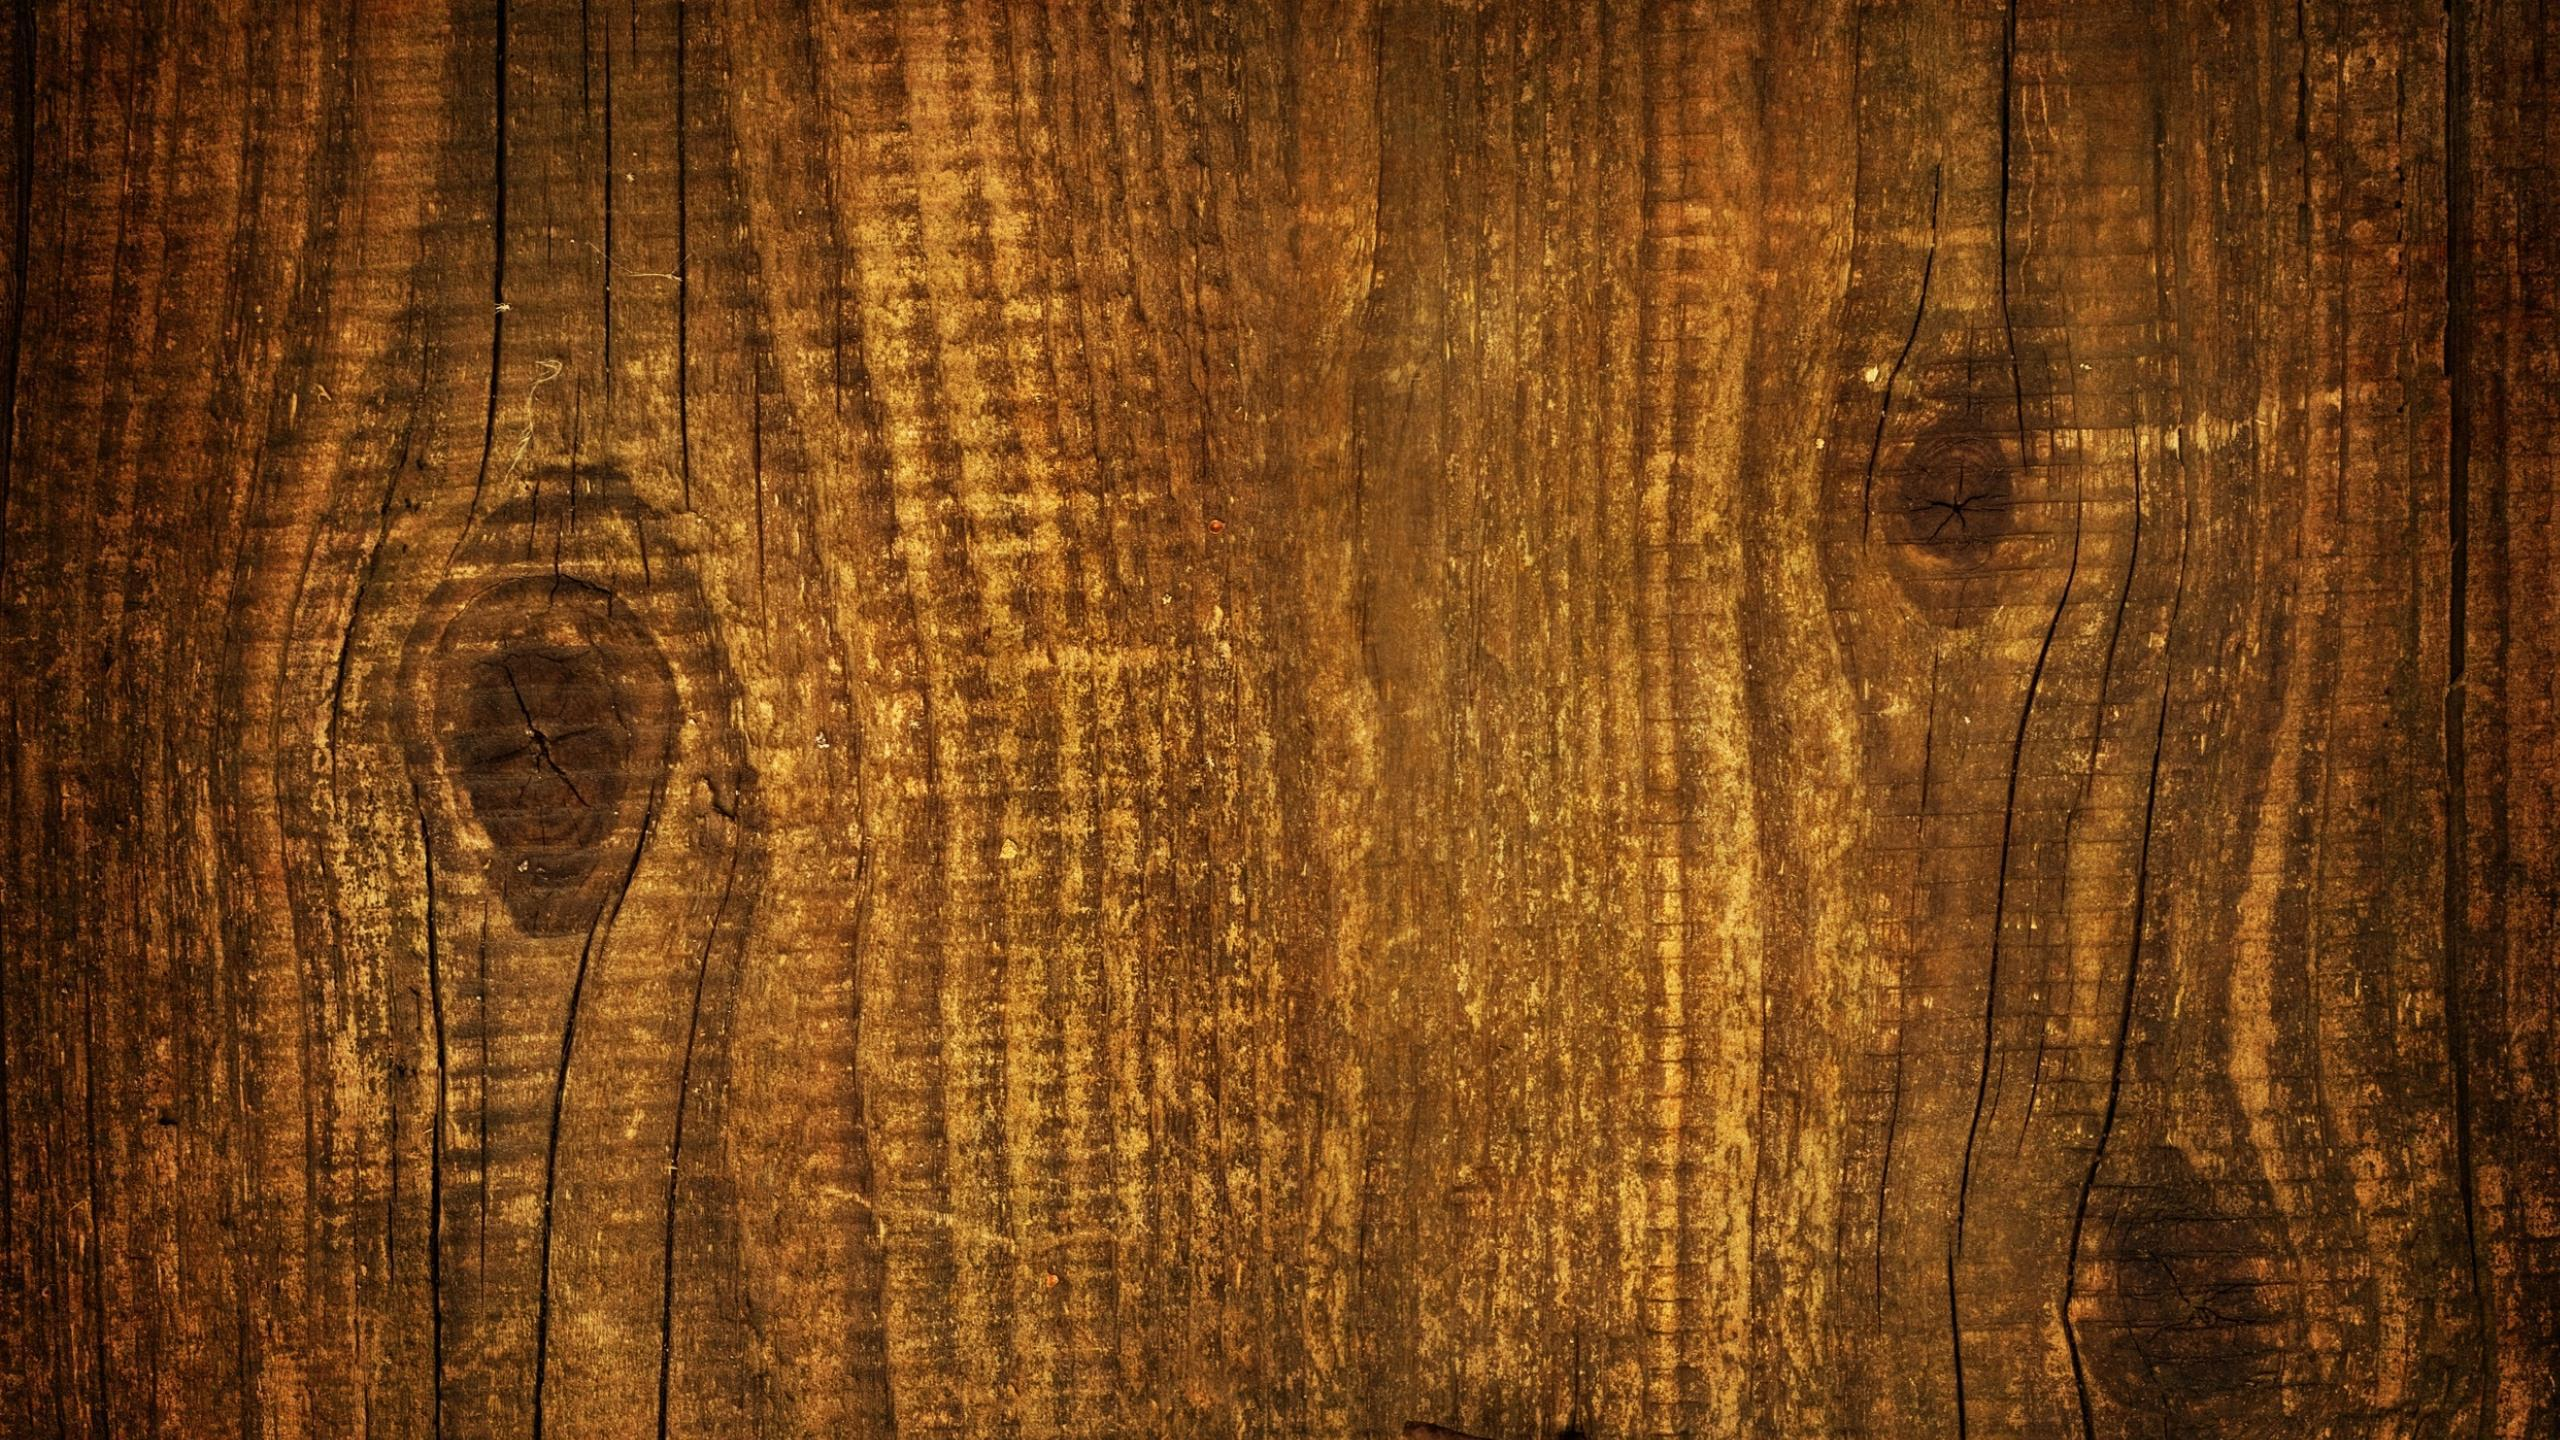 wood grain wallpaper 15235 - Wood Grain Wall Paper